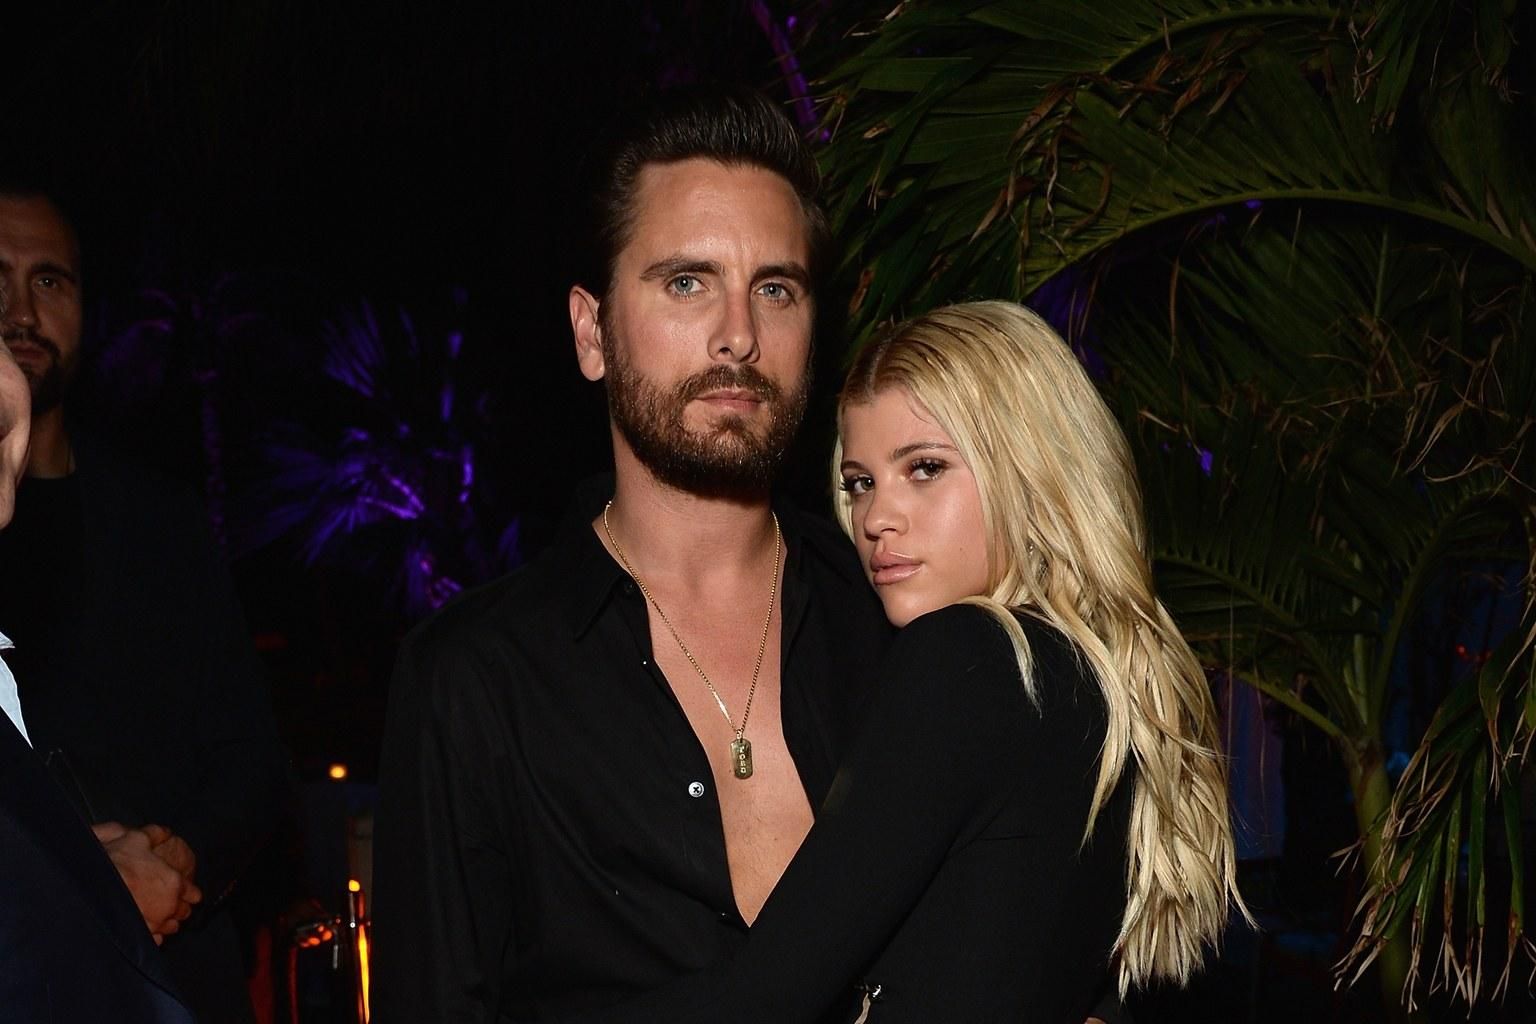 Scott Disick And Sofia Richie Officially Broken Up -- She's Moved Out!